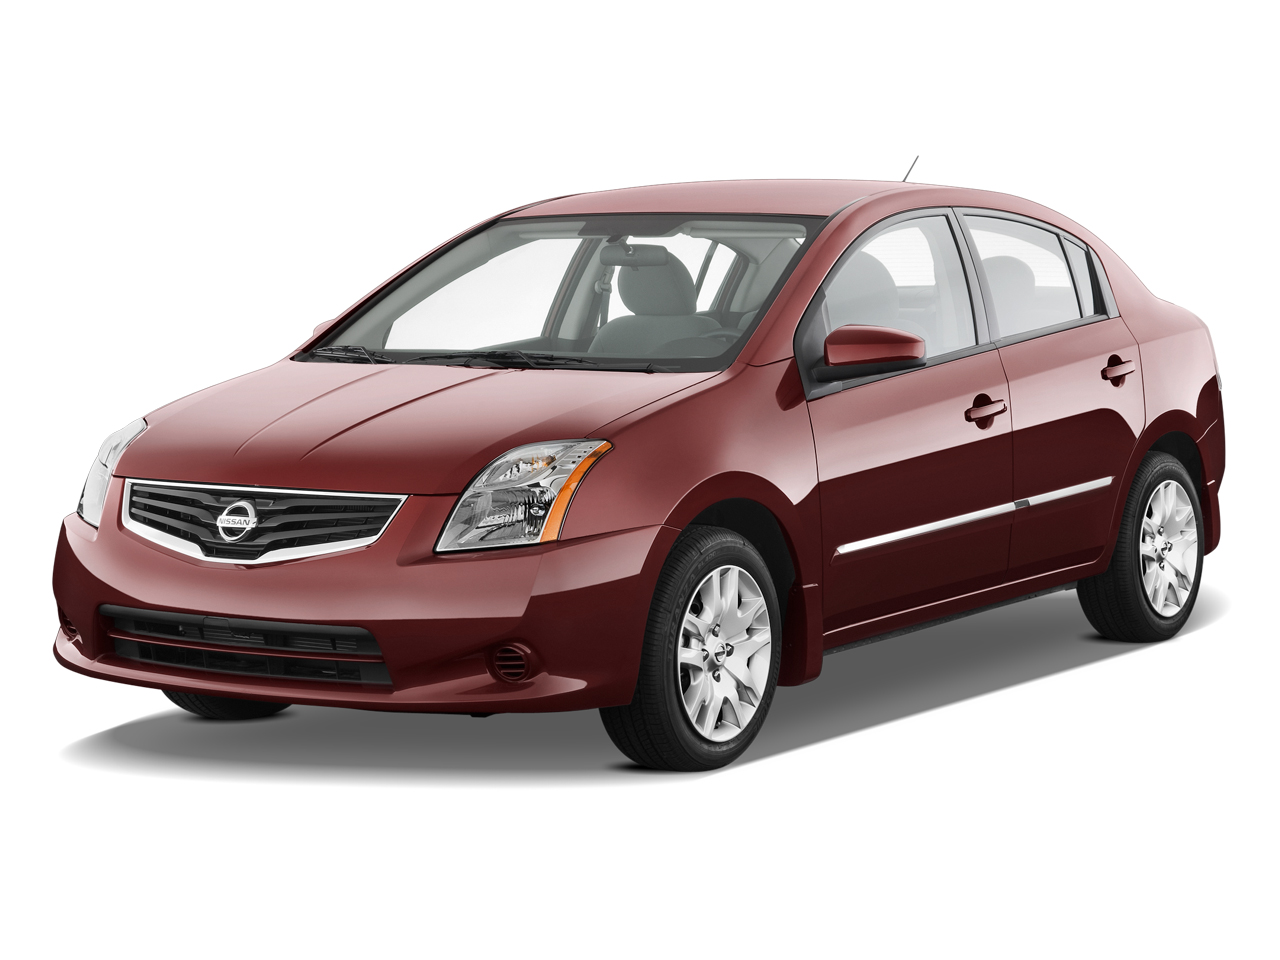 2011 nissan sentra review ratings specs prices and. Black Bedroom Furniture Sets. Home Design Ideas